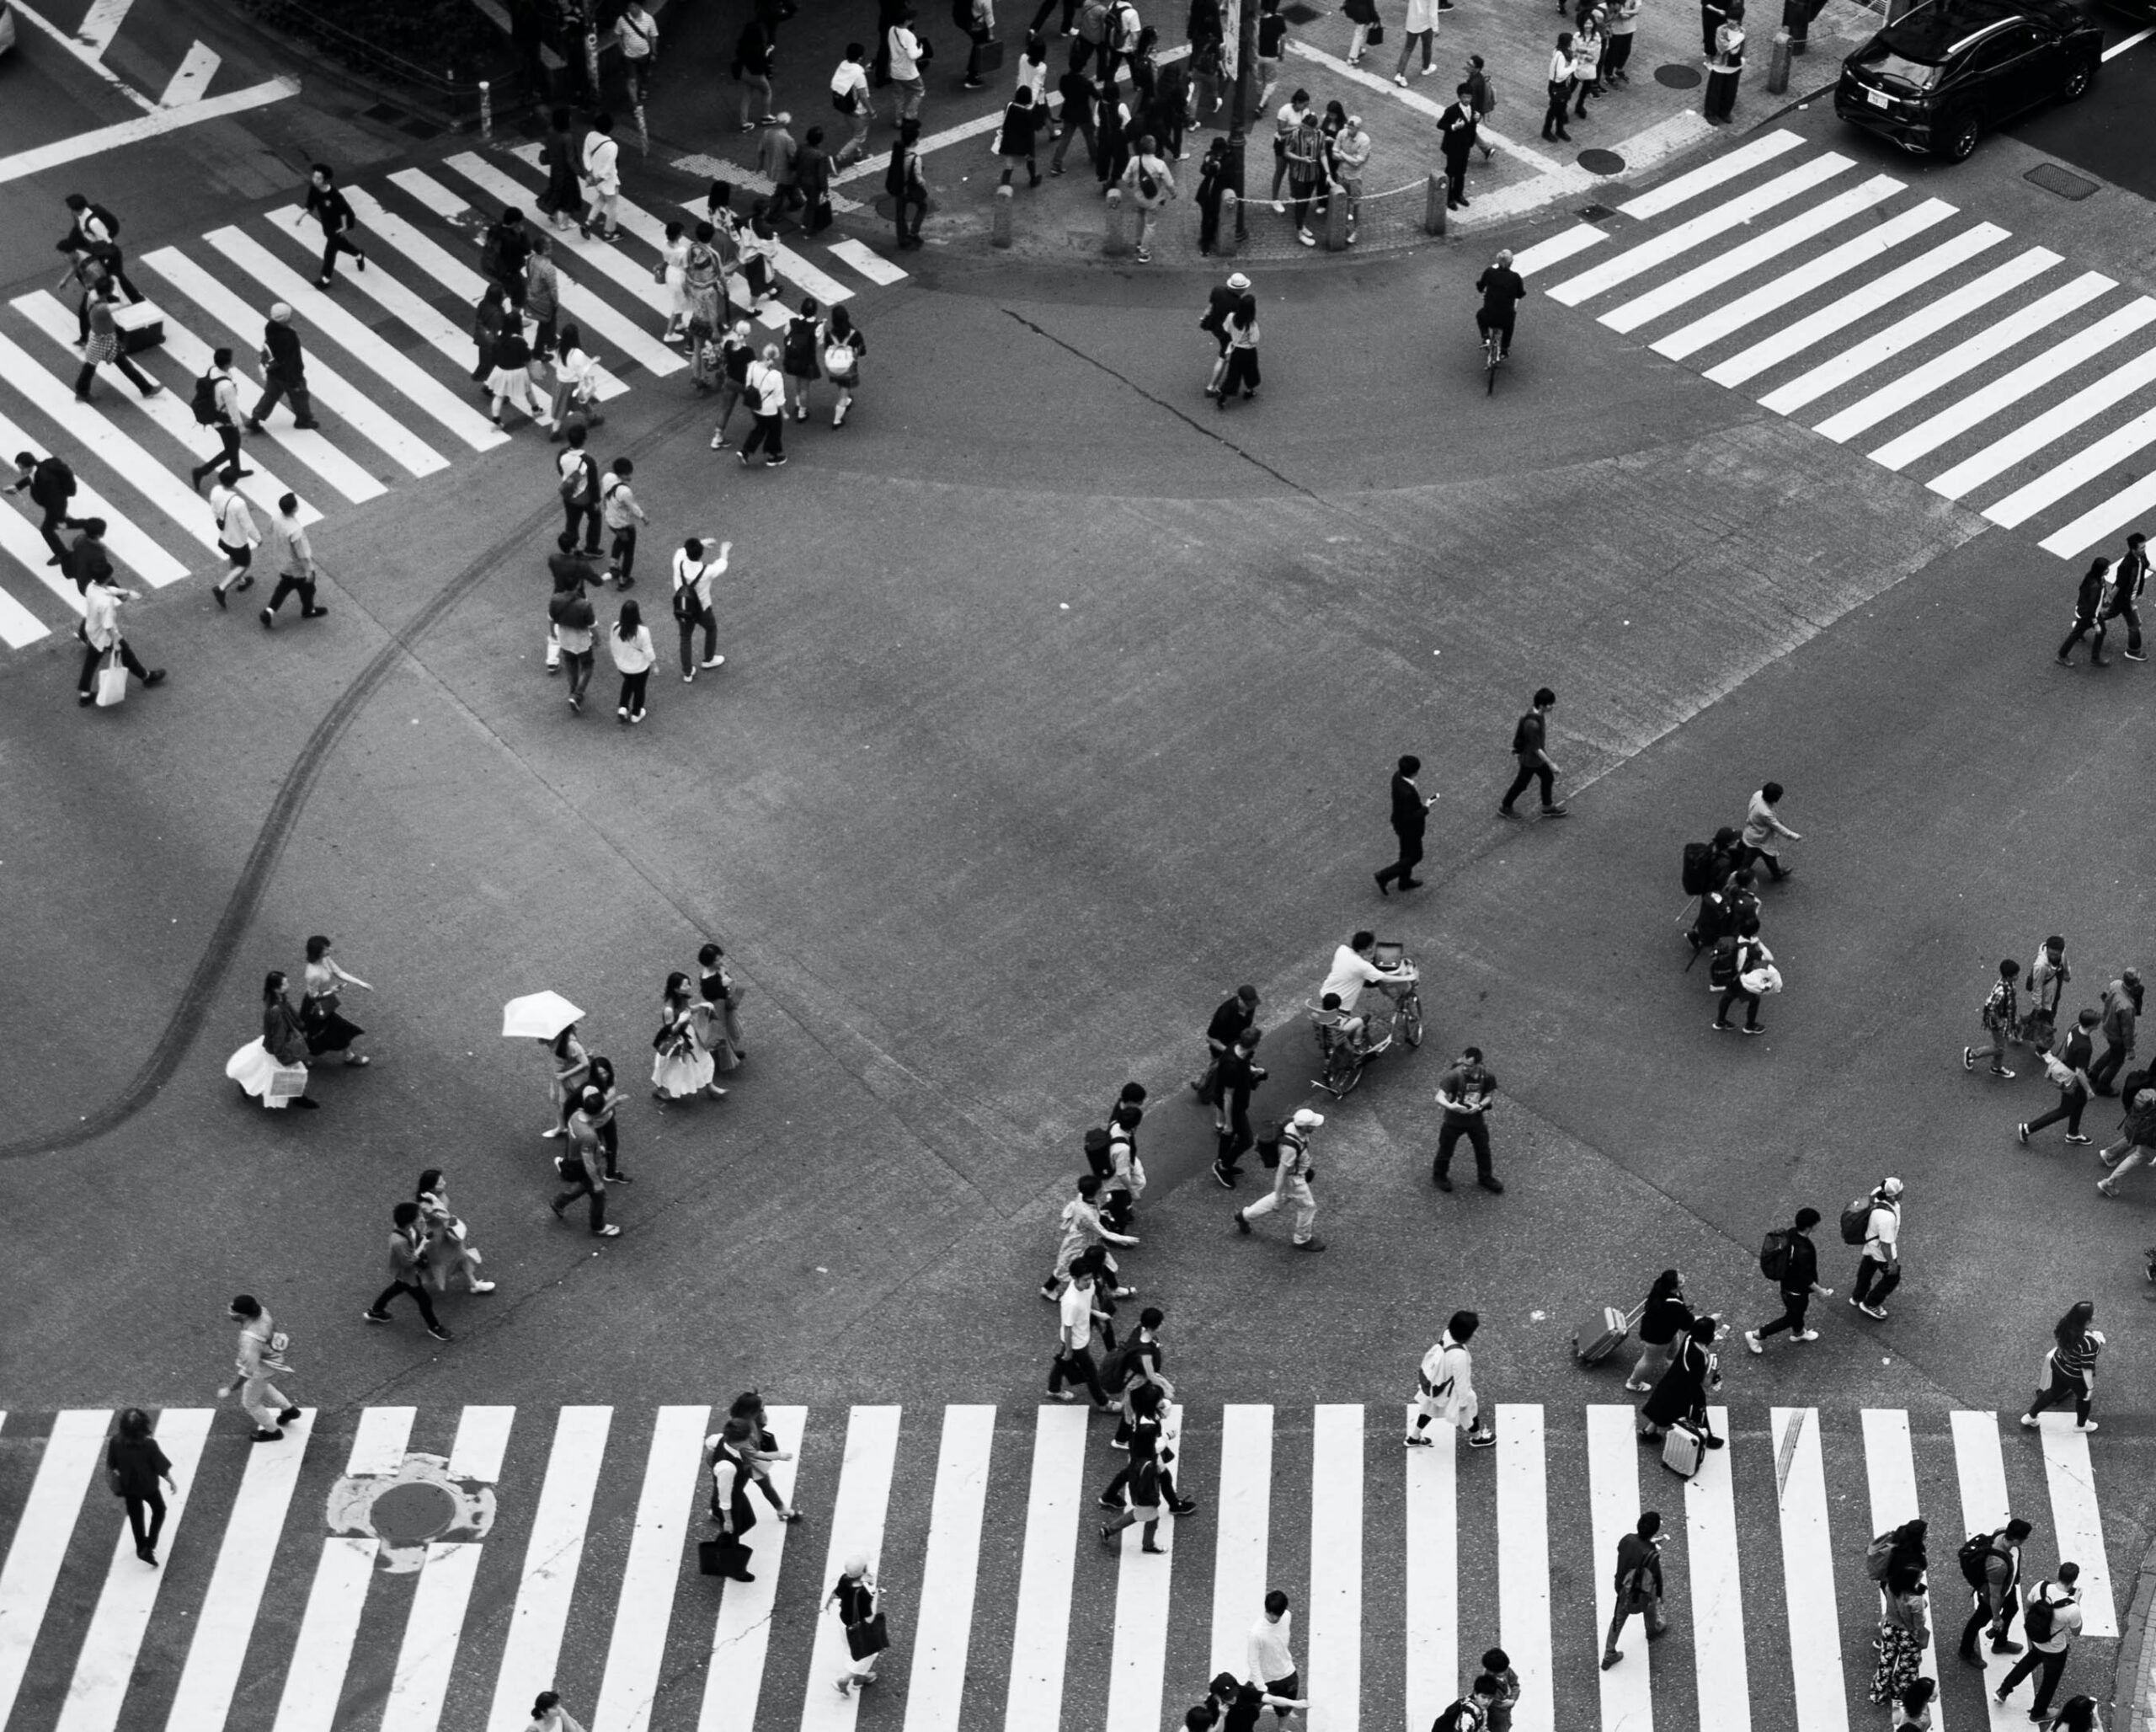 intersection in a city with people crossing